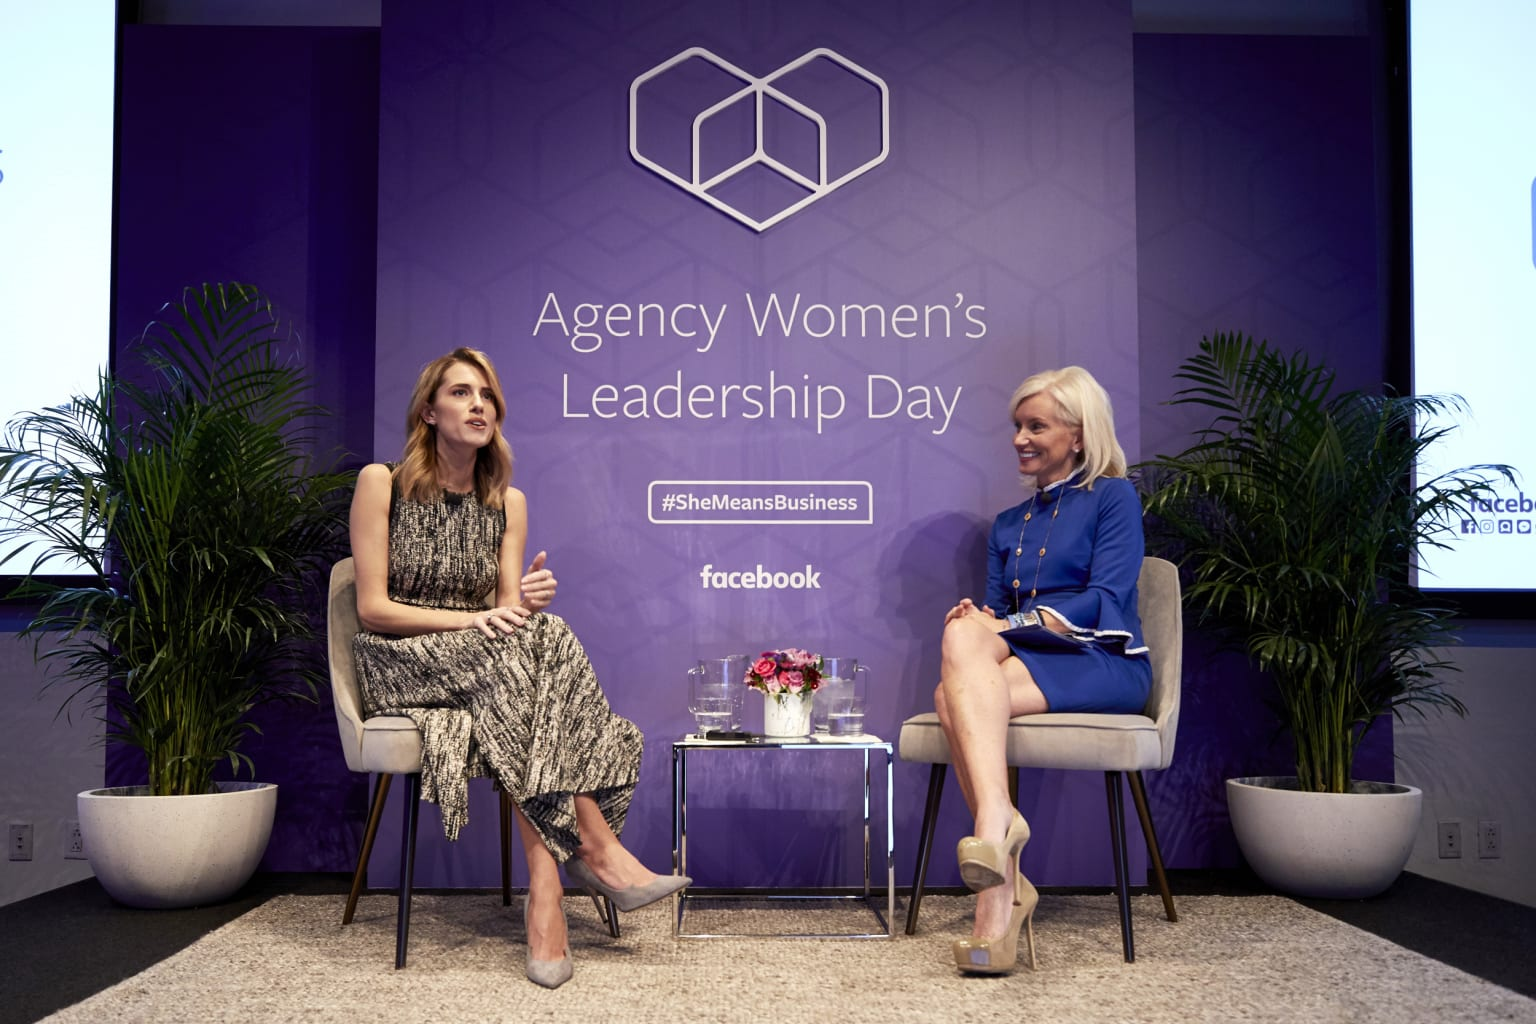 Facebook's Agency Woman's Leadership Day